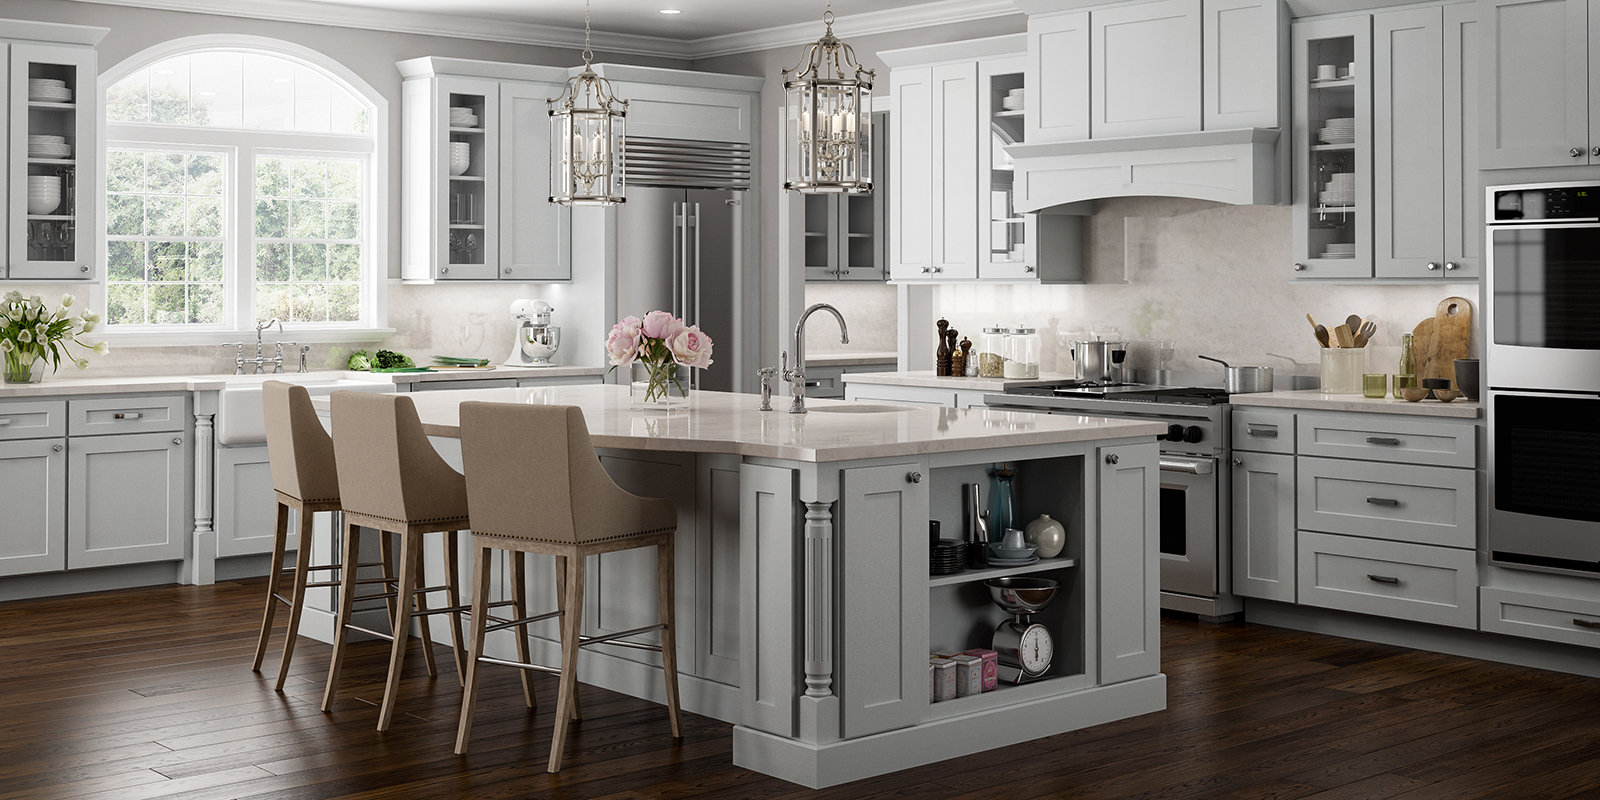 Dream Kitchens And Baths Start With Humphrey S Kitchen And Bath Gallery